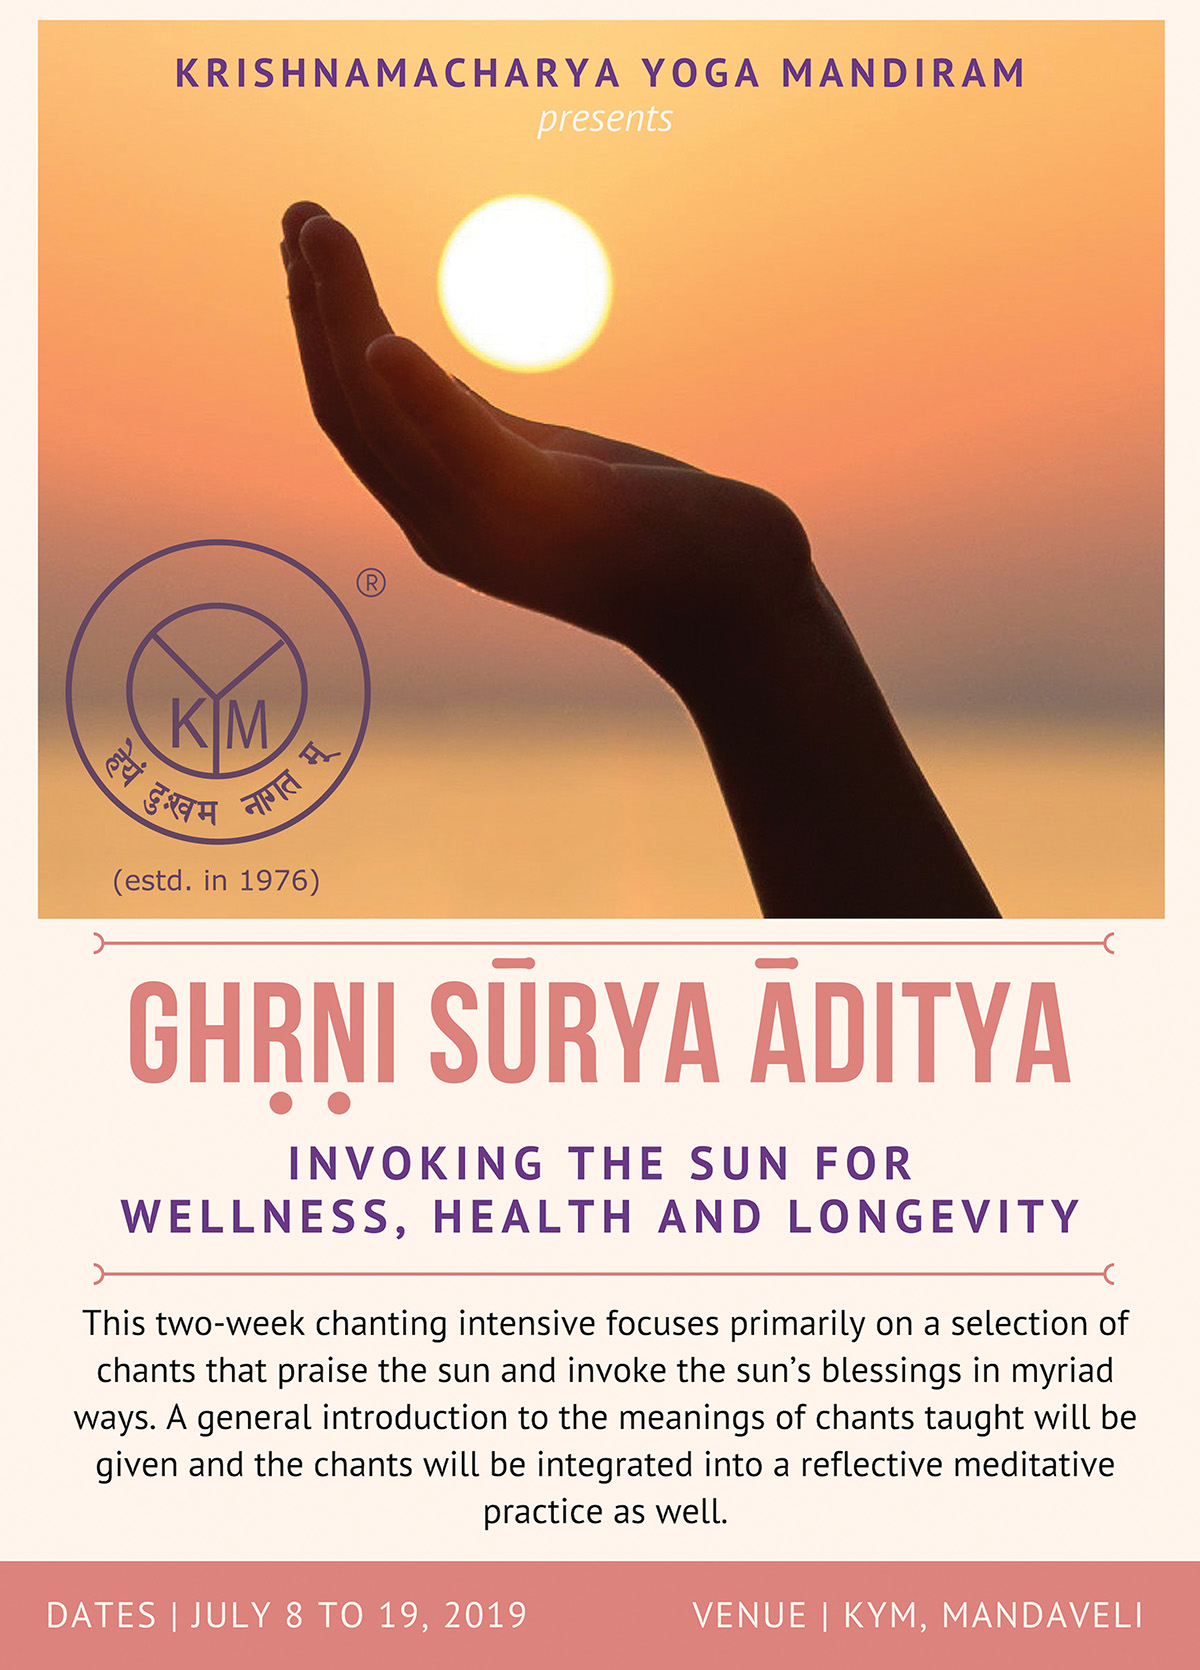 Ghṛṇi Sūrya Āditya | Invoking the sun for health, wellness and longevity